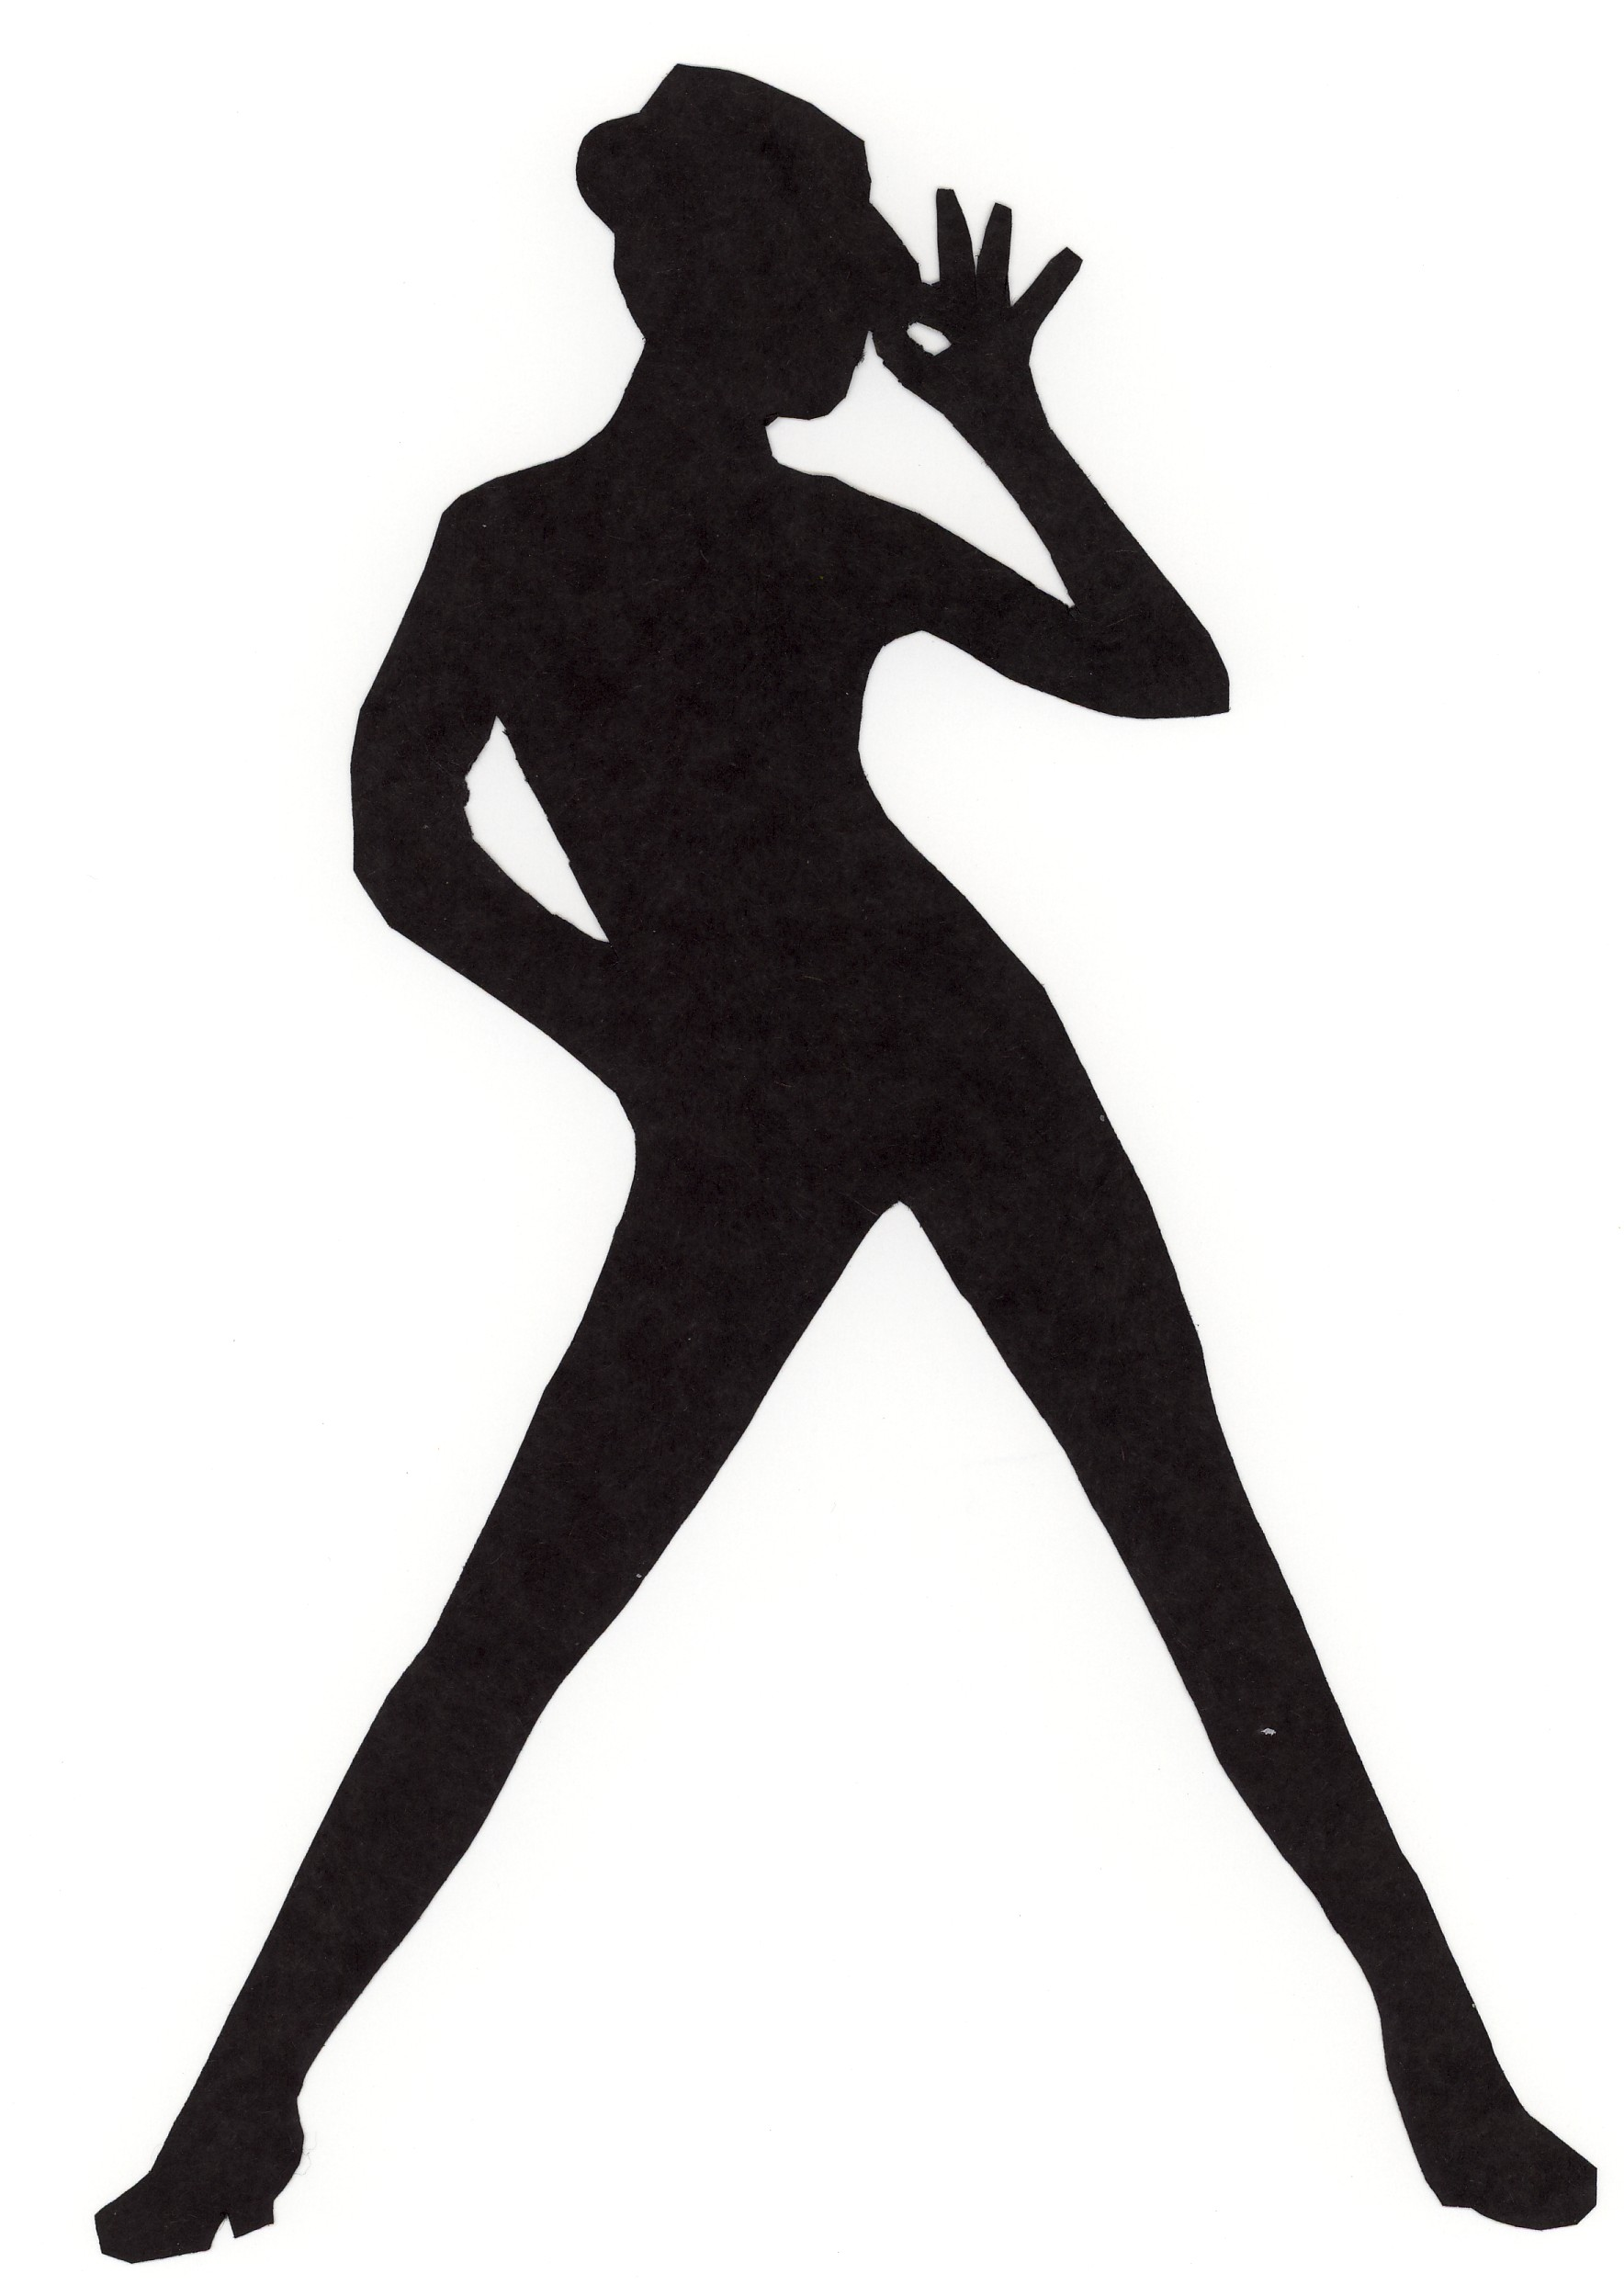 Dance line silhouette at. Dancer clipart danceline clip freeuse stock